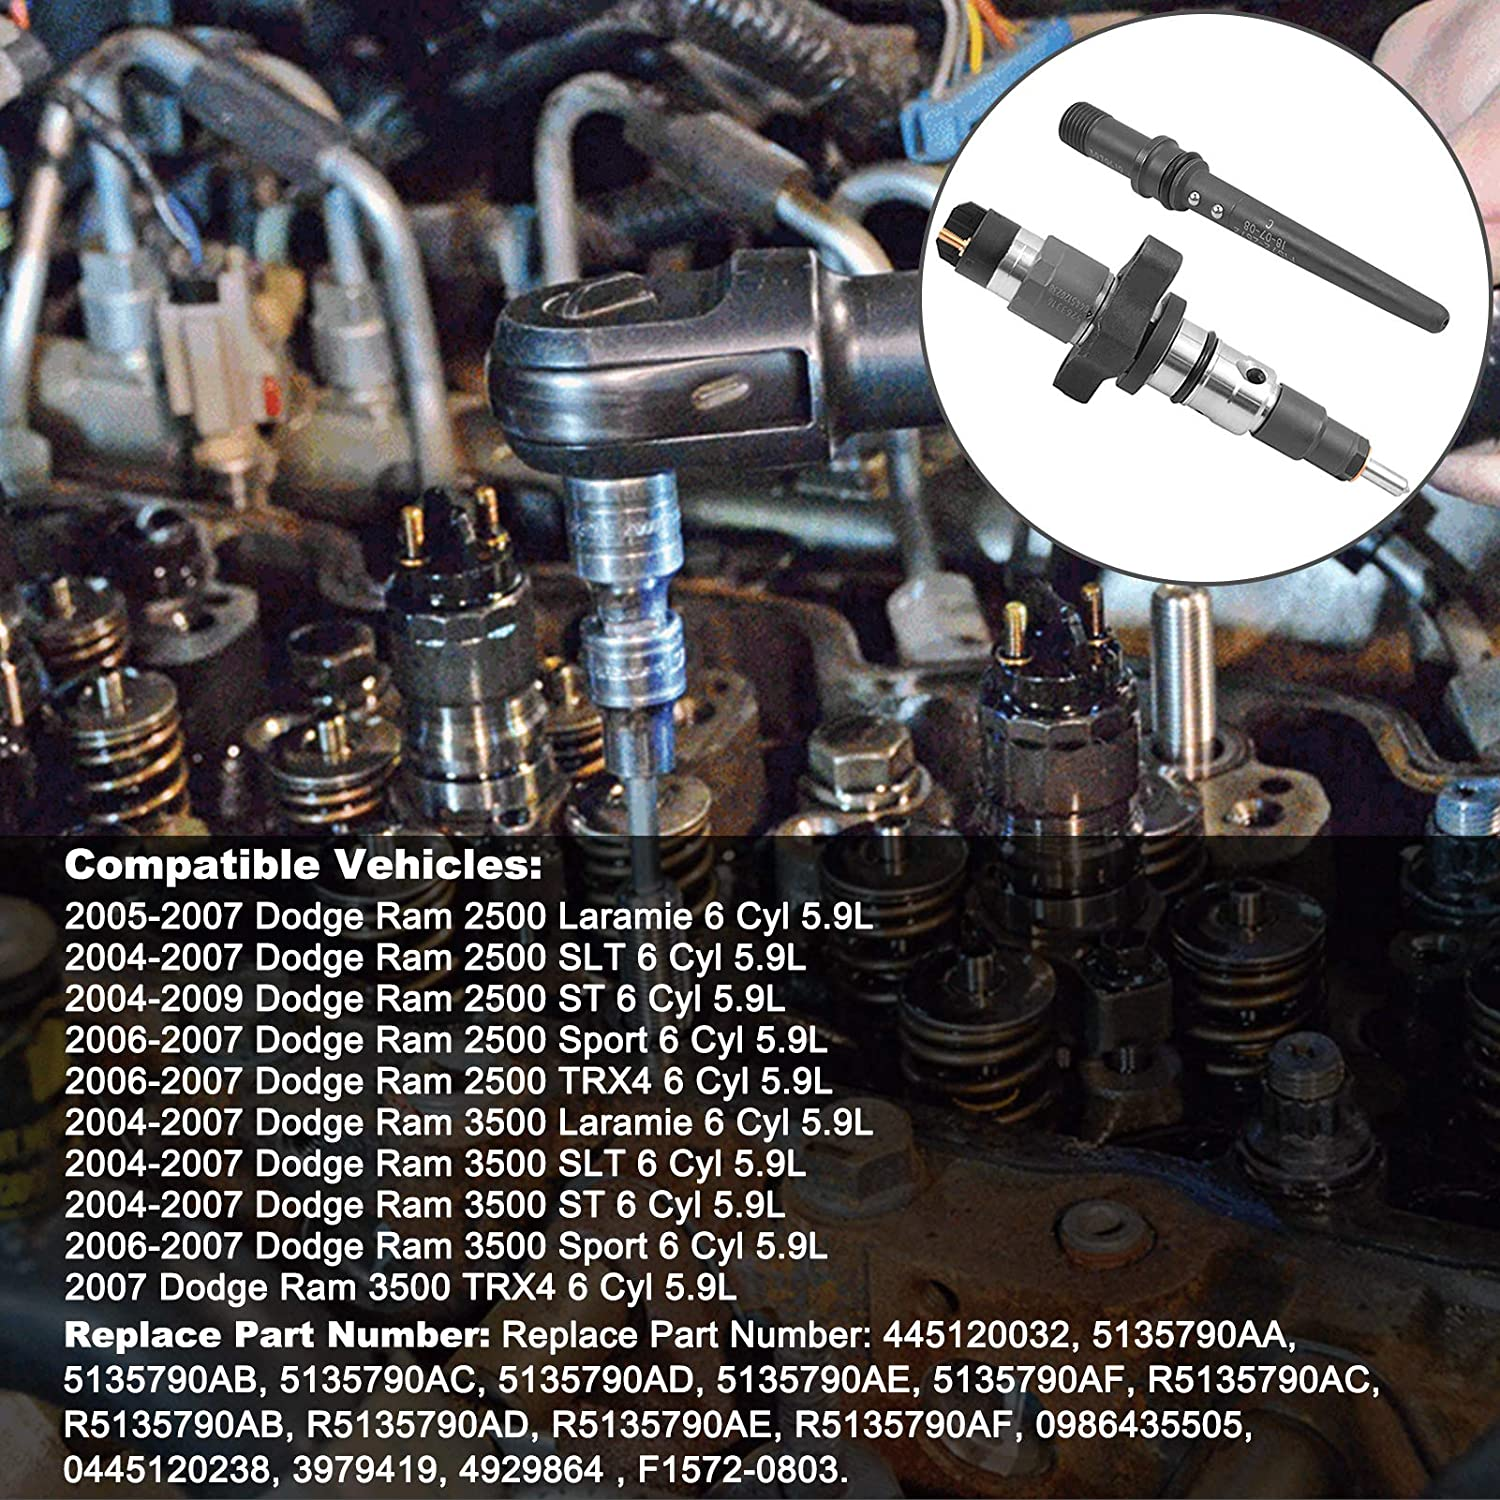 Replacement Parts Bicos 5135790AA Diesel Fuel Injector with ...